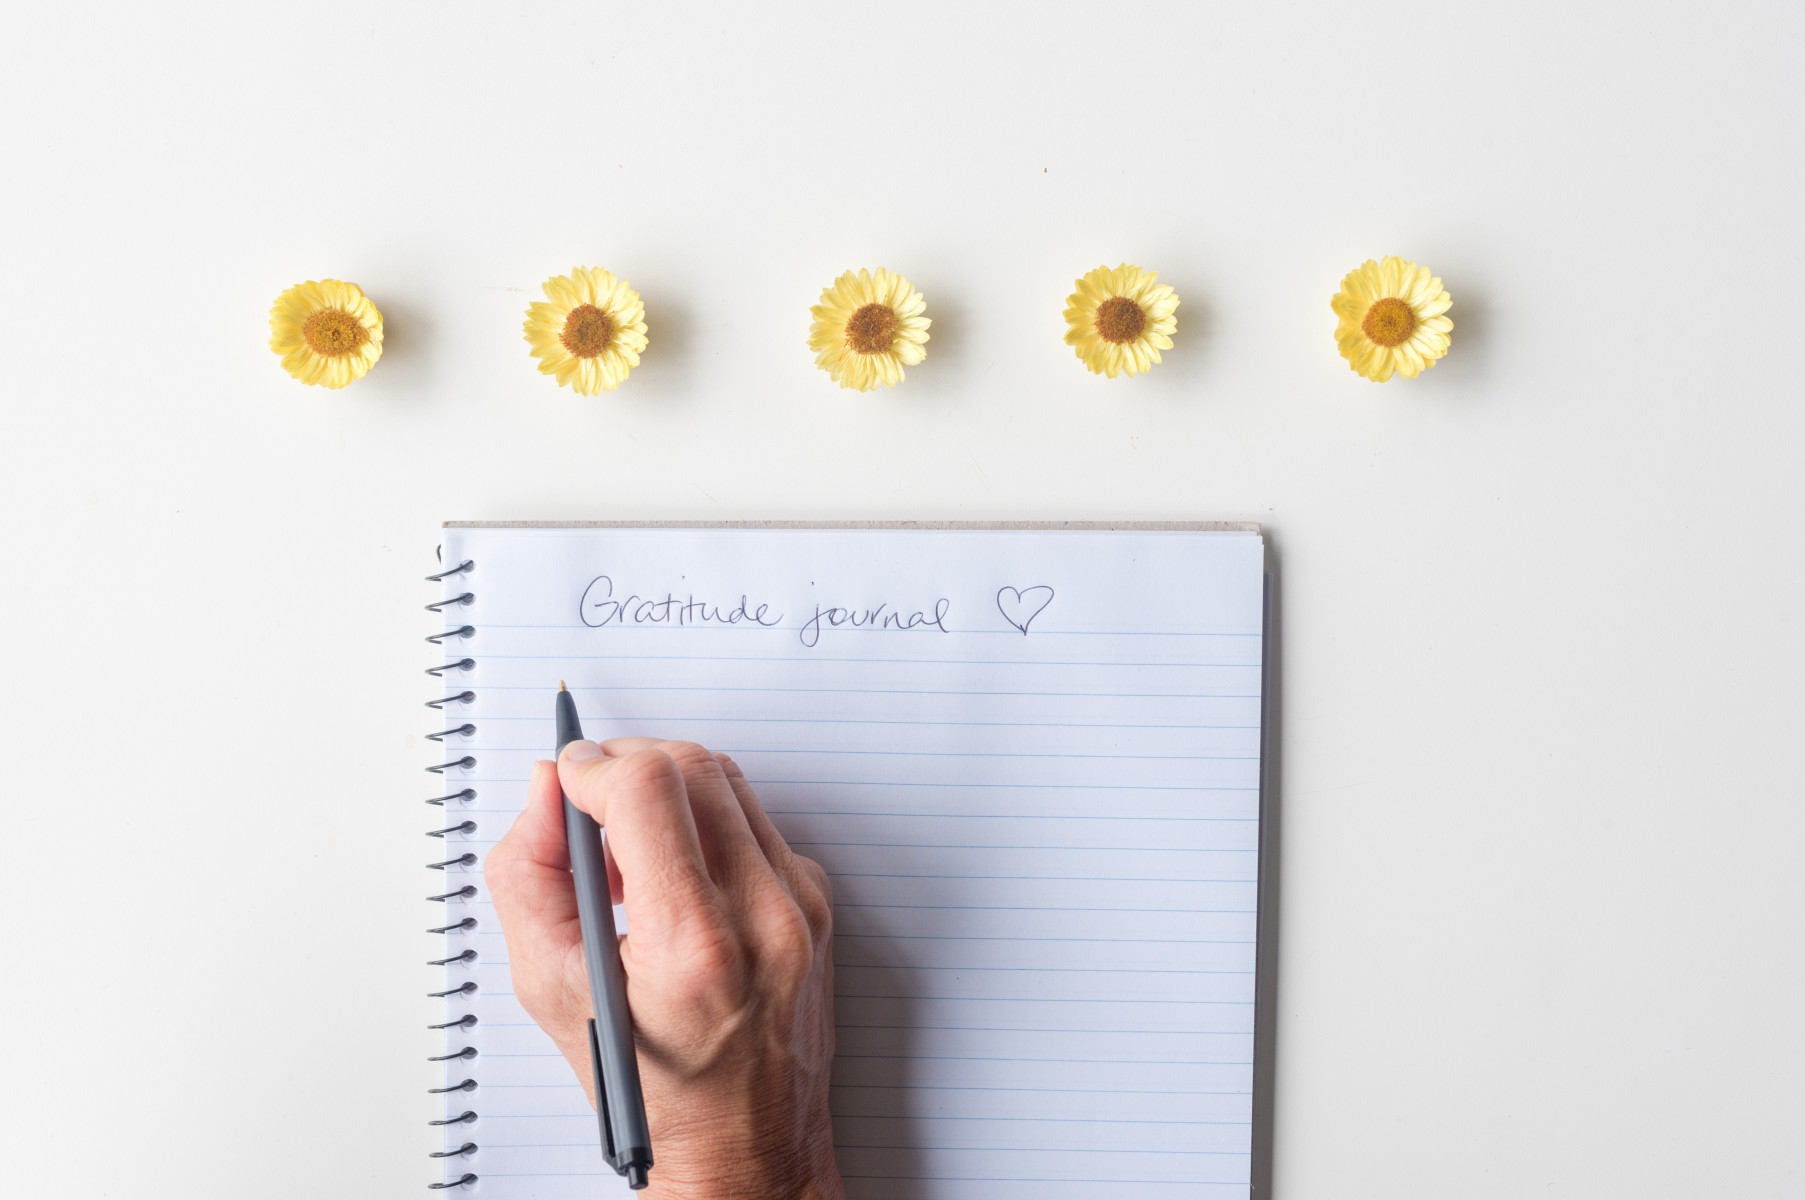 Gratitude journals may be valuable -- but not for treating depression and anxiety.